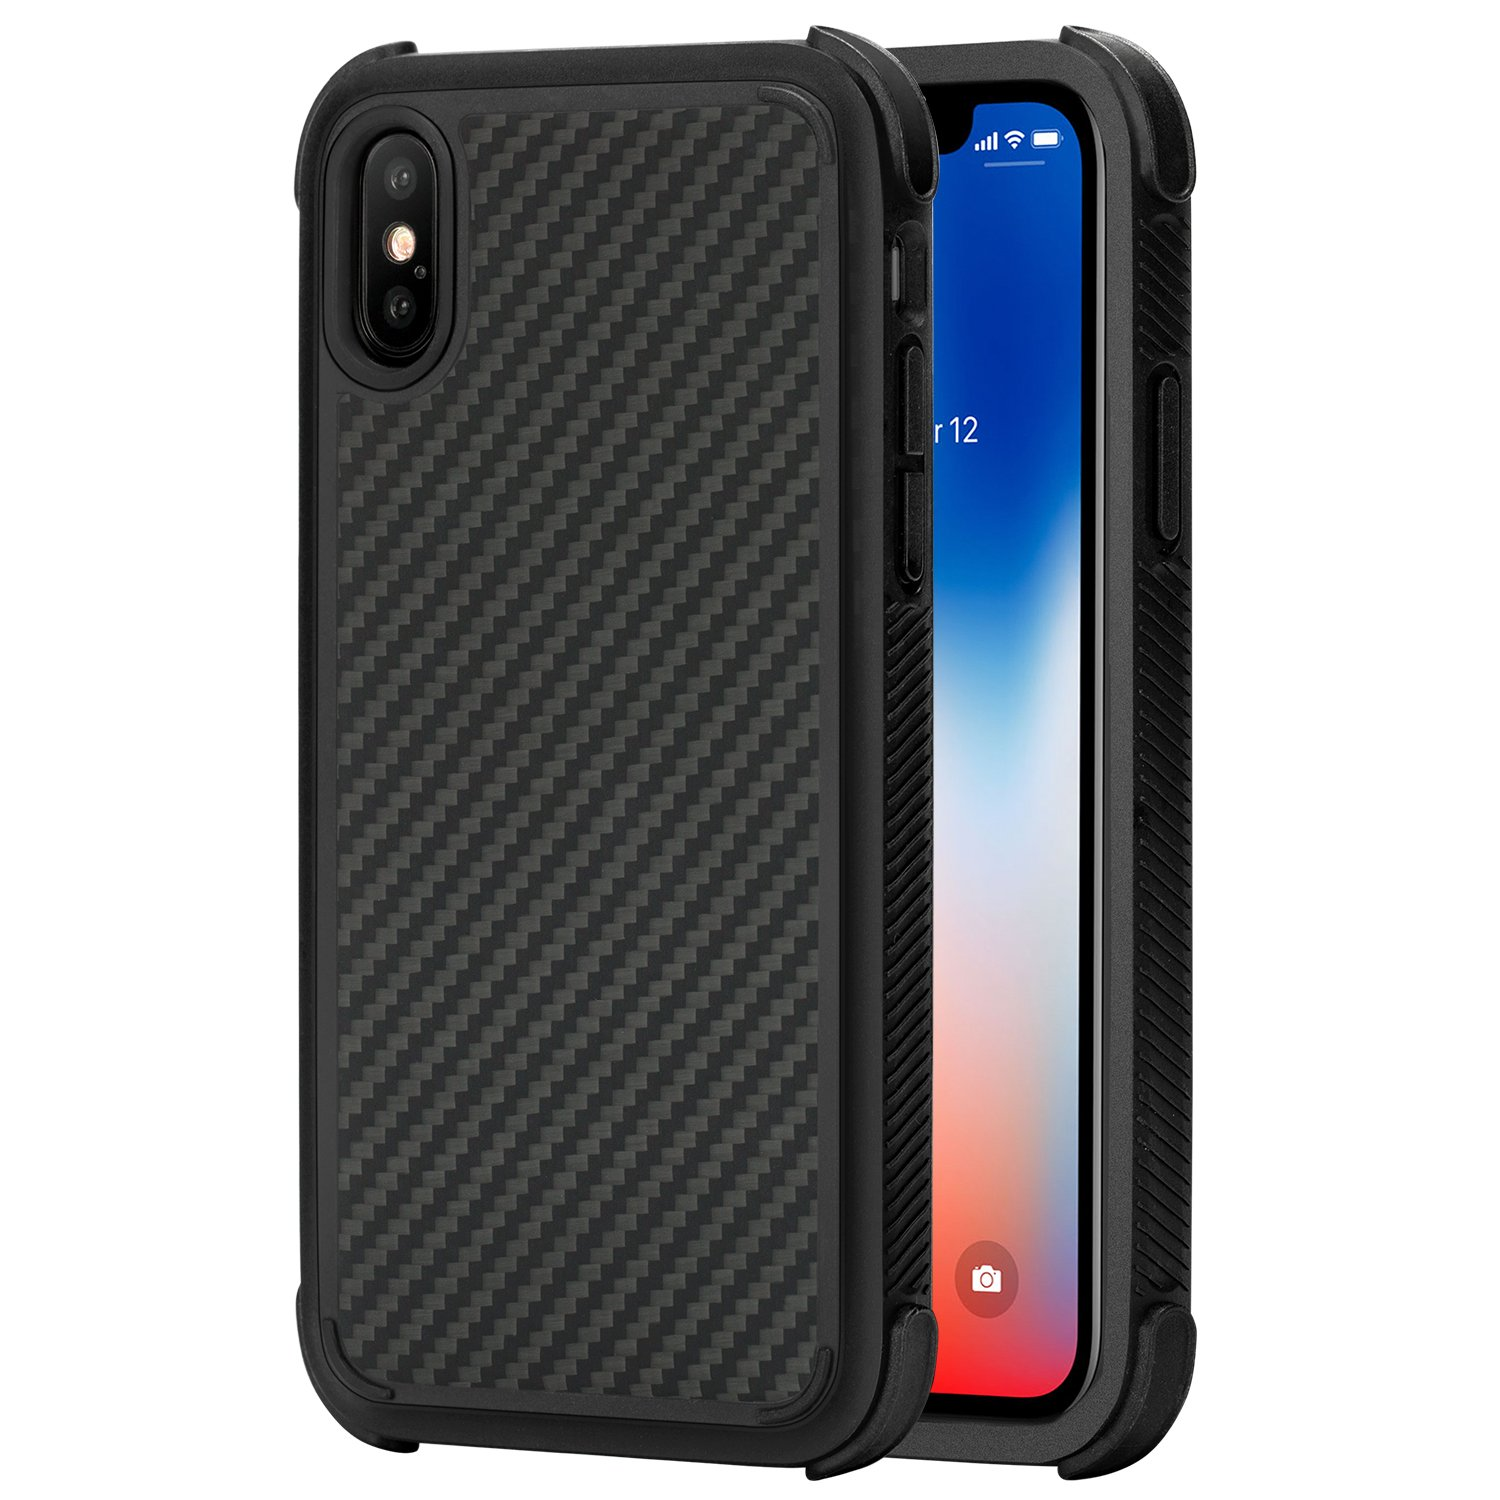 PITAKA Protective Case Compatible with iPhone X,Magcase Pro Military Drop Test Case Strongest Super Durable Resilient Shock Absorption Rugged Armor Case with Slim and Light Design - Black